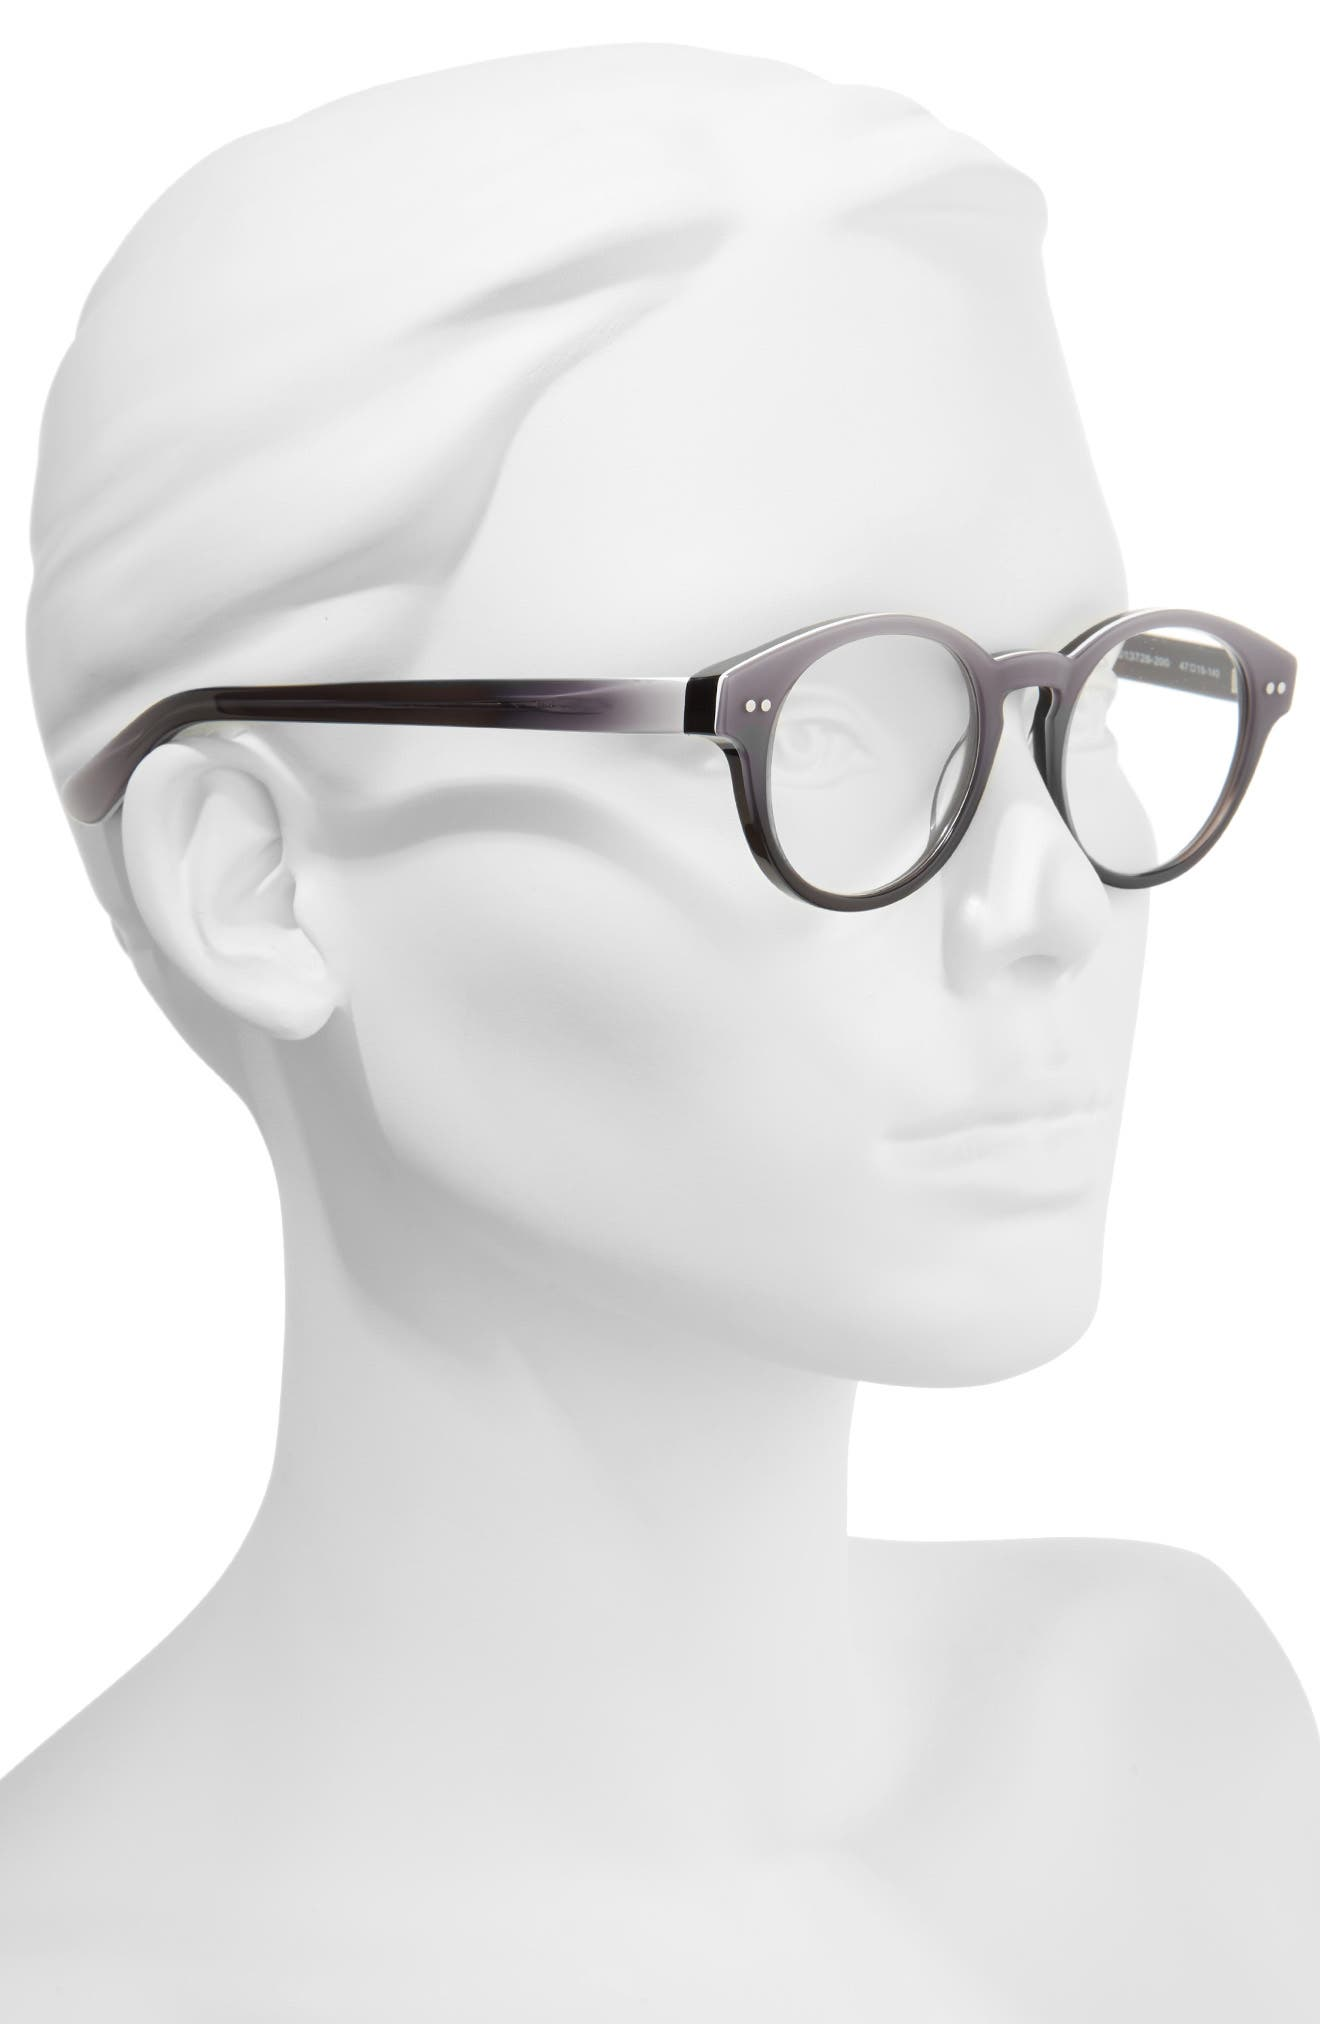 Harriet 47mm Reading Glasses,                             Alternate thumbnail 2, color,                             020